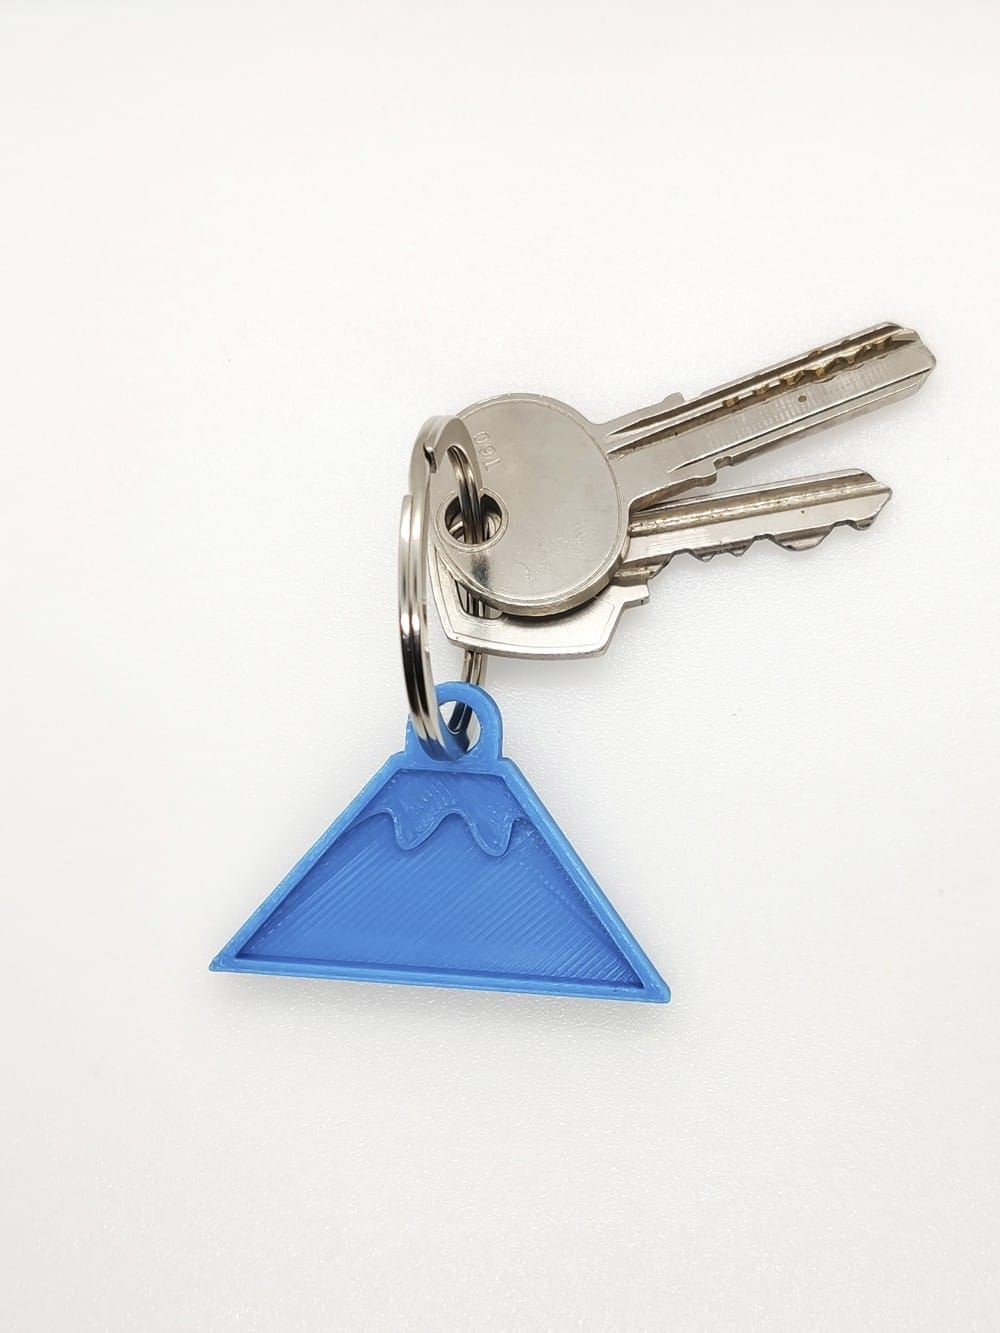 Biodegradable 3D printed keychain-Fuji